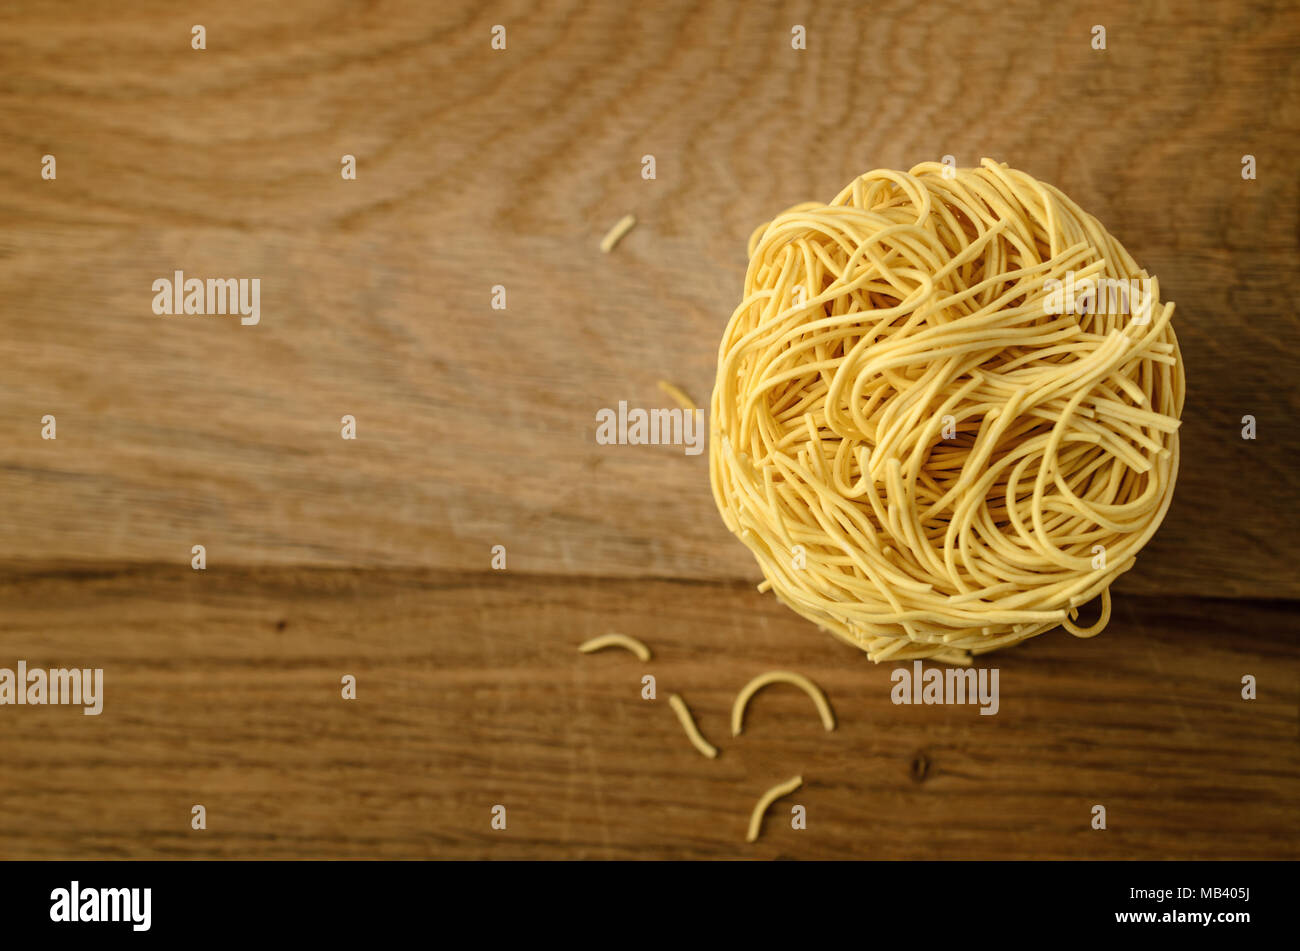 Overhead shot of stacked egg noodle nests with broken fragments scattered on oak wood surface below. Copy space to left. - Stock Image